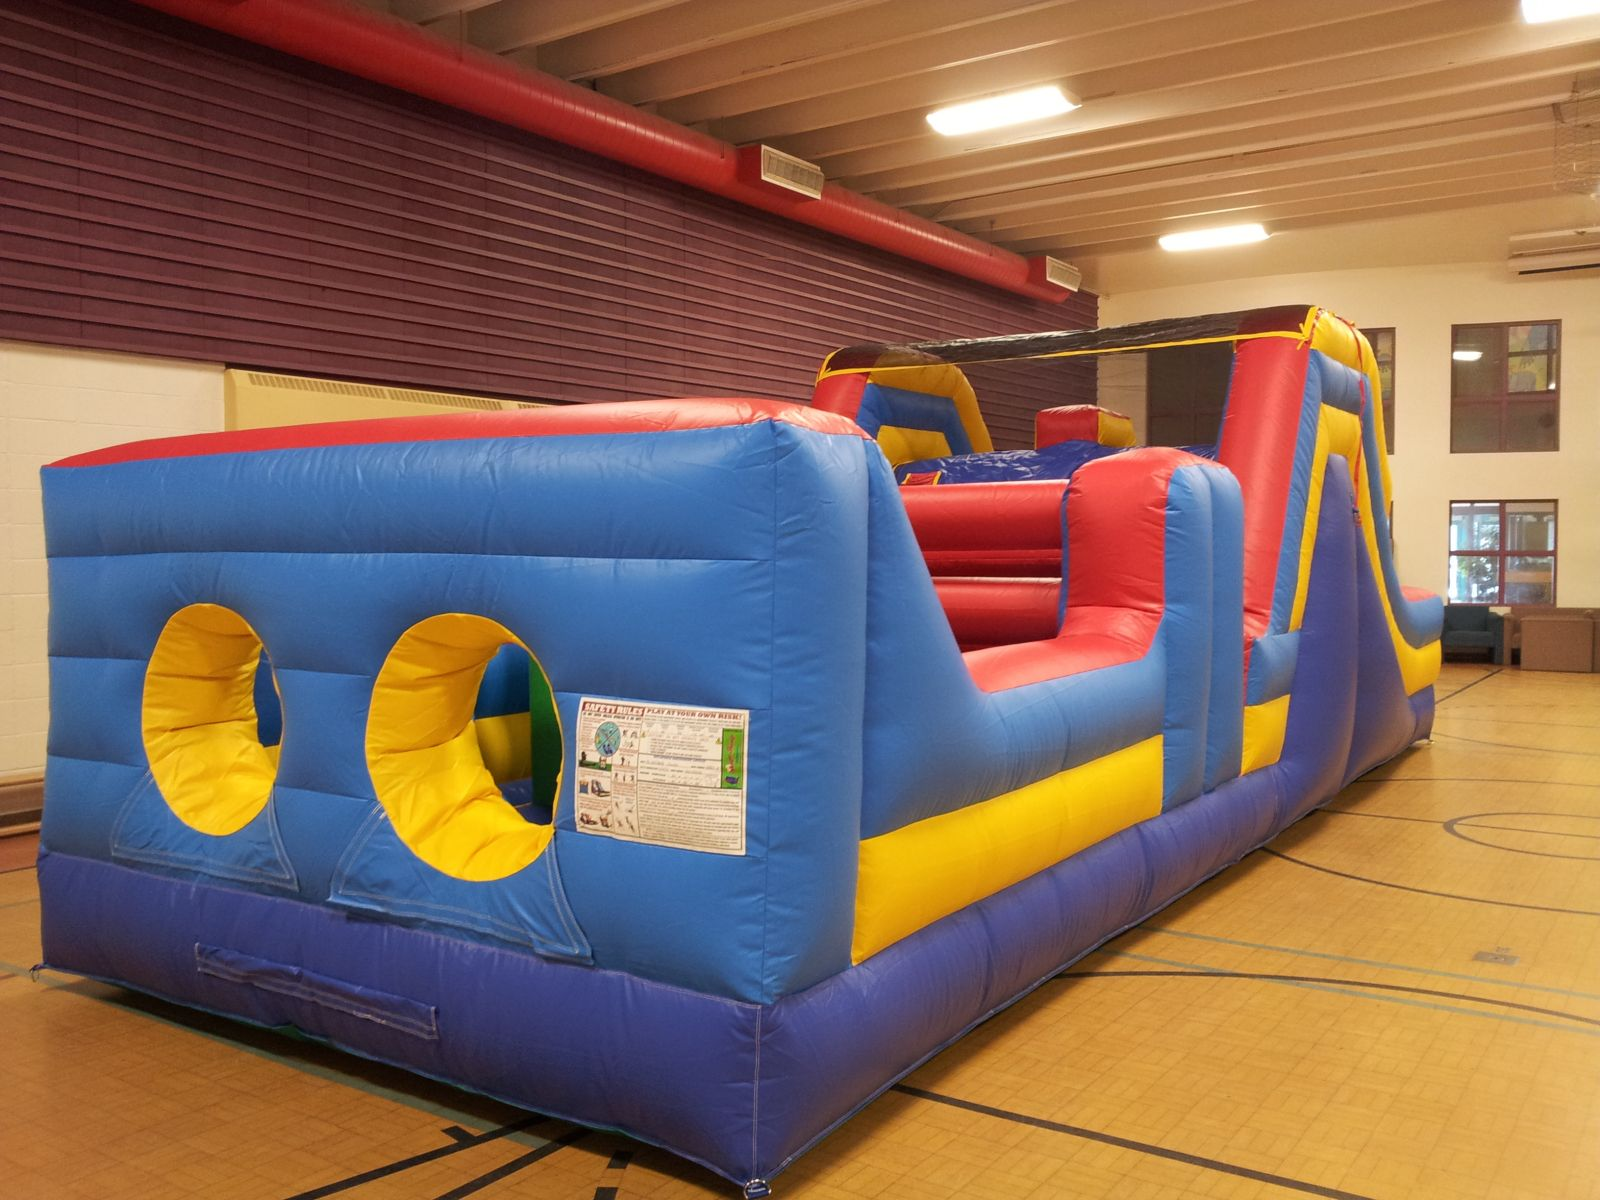 Edmonton 32' Obstacle Course rental